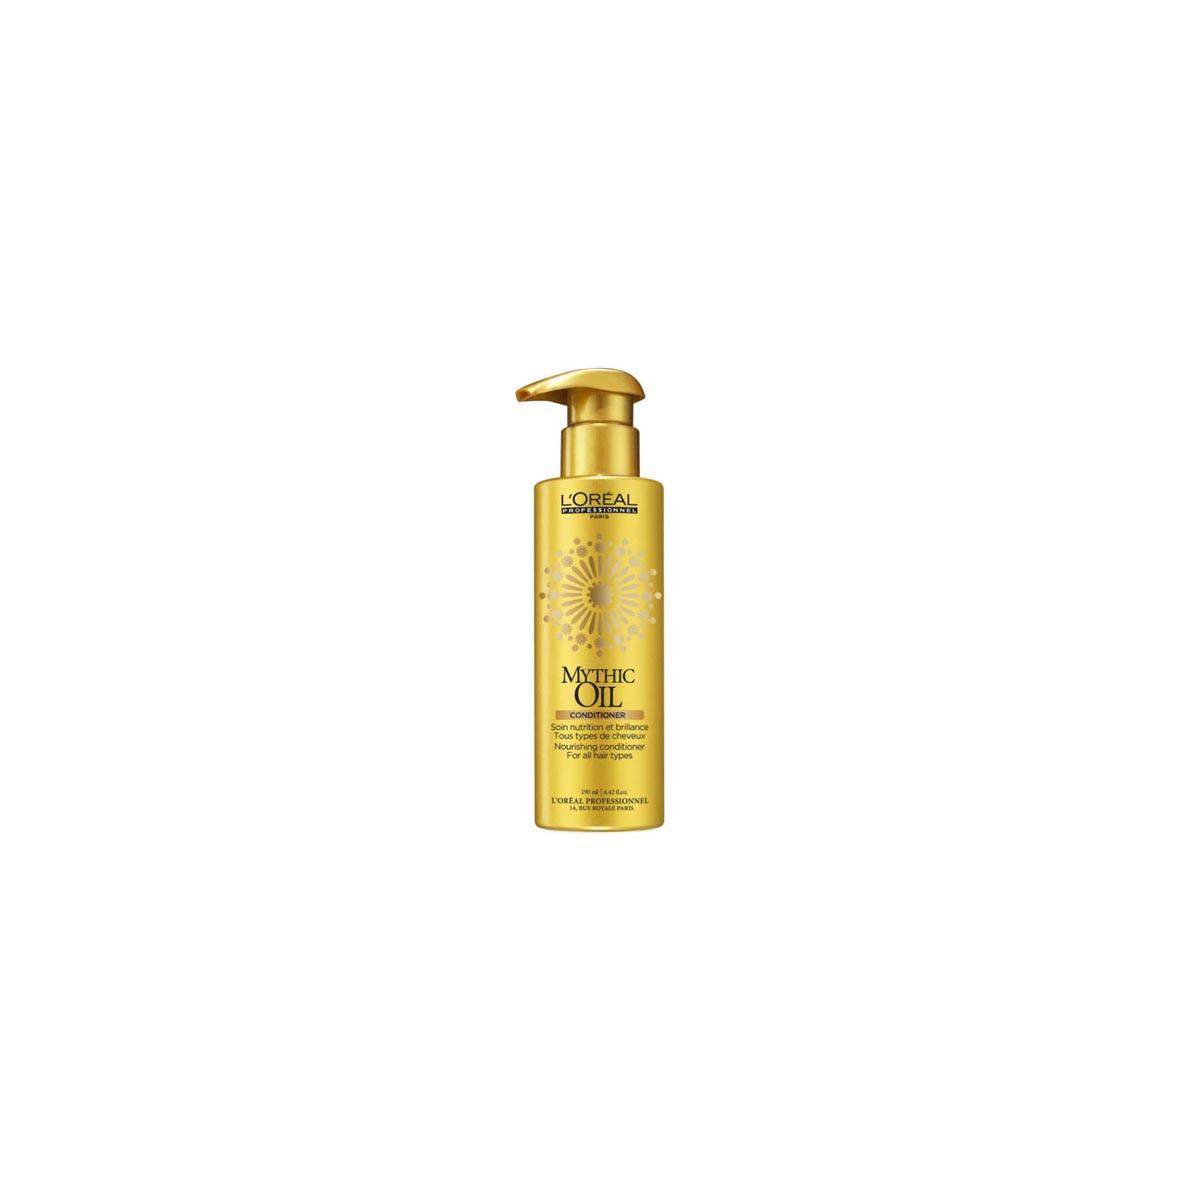 L´oreal Expert Mythic Oil Conditioner 190 ml